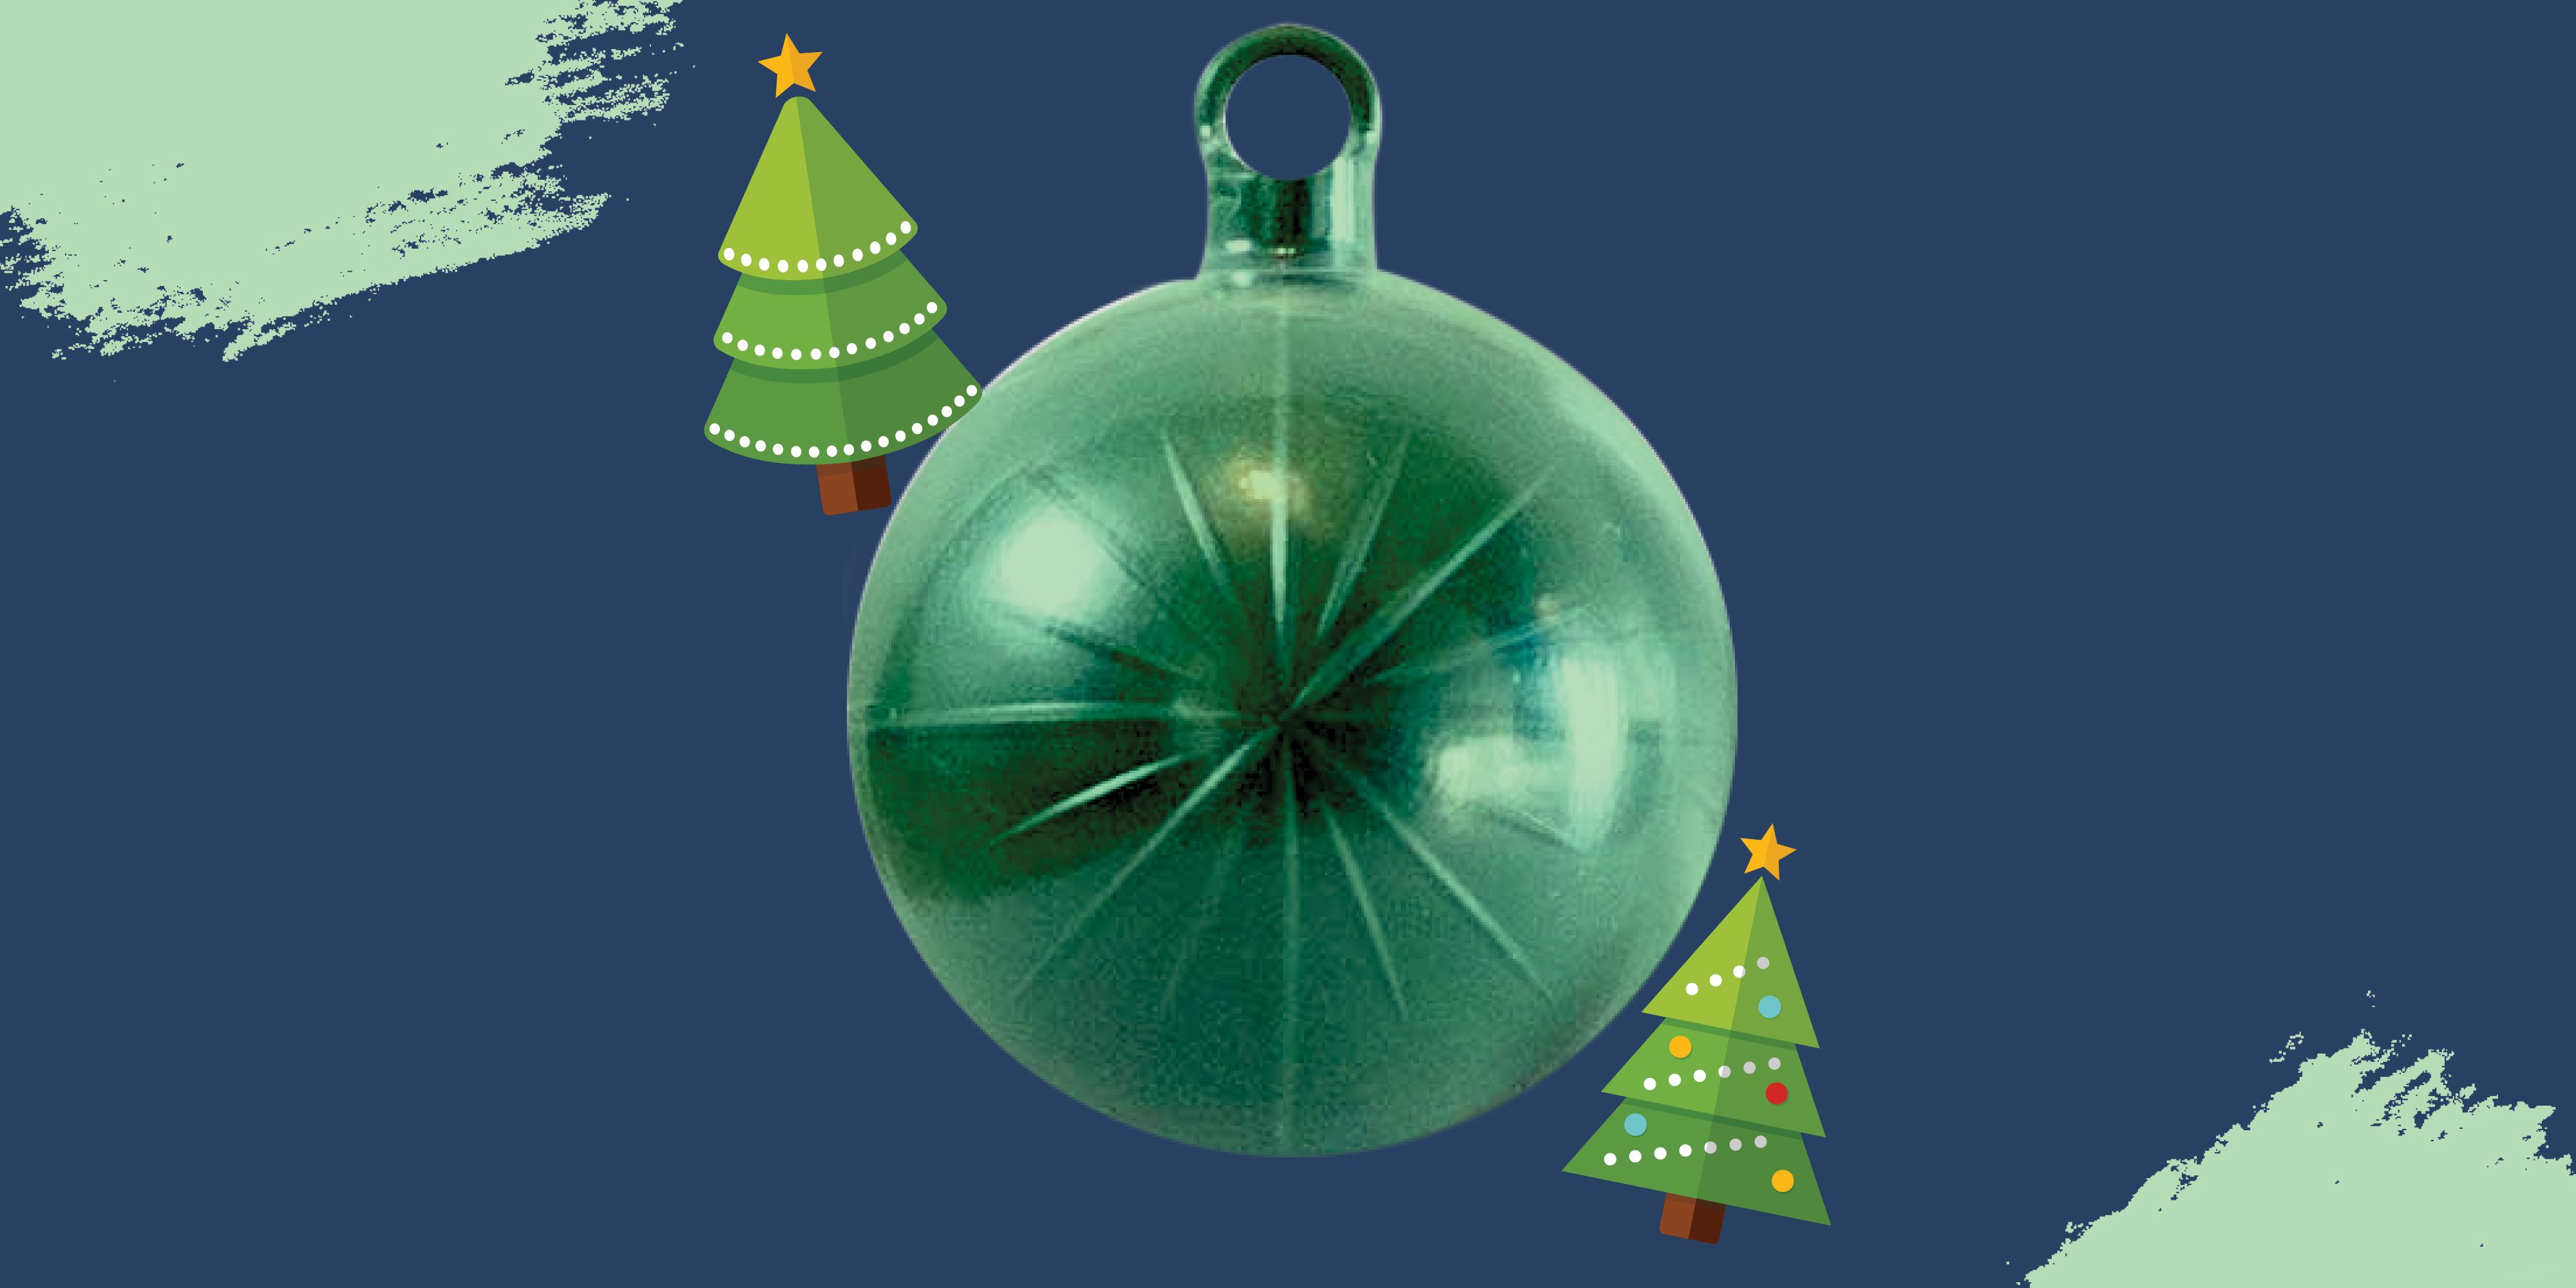 This Heat-Sensing Christmas Tree Ornament Was Designed to Detect Fires Faster